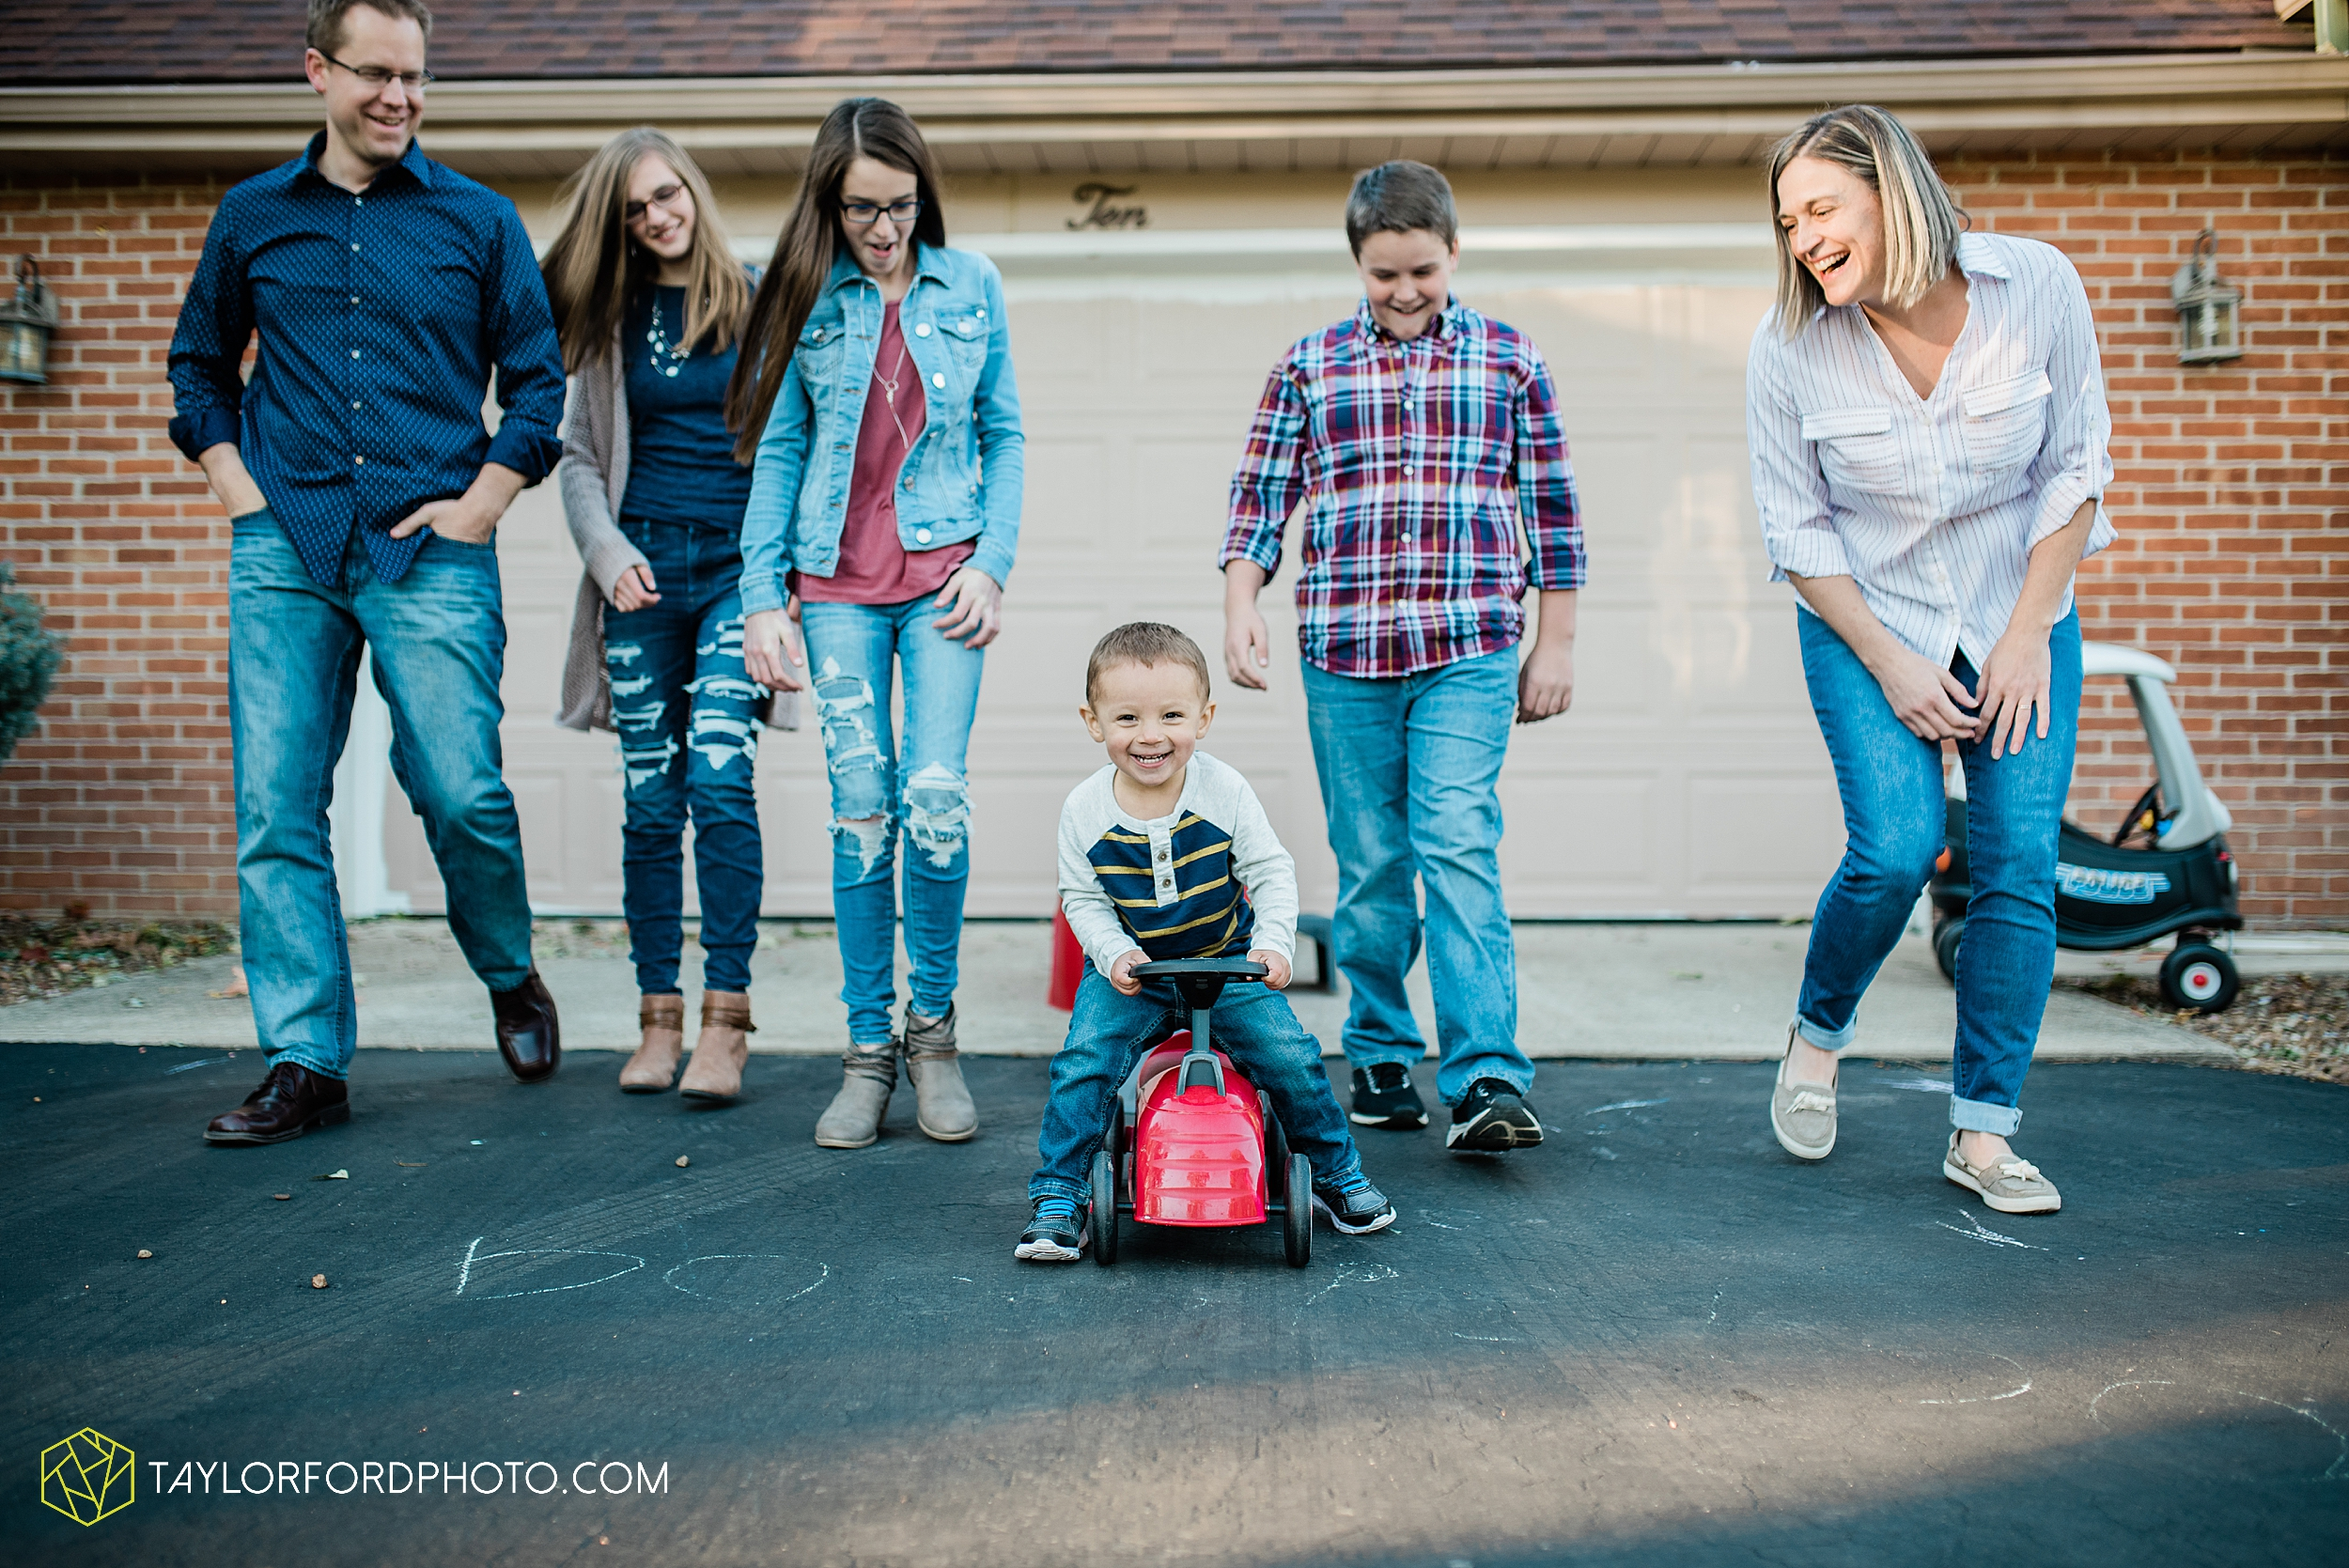 northwest-van-wert-ohio-backyard-at-home-outdoor-natural-light-stollerfamily-photographer-taylor-ford-photography_1250.jpg